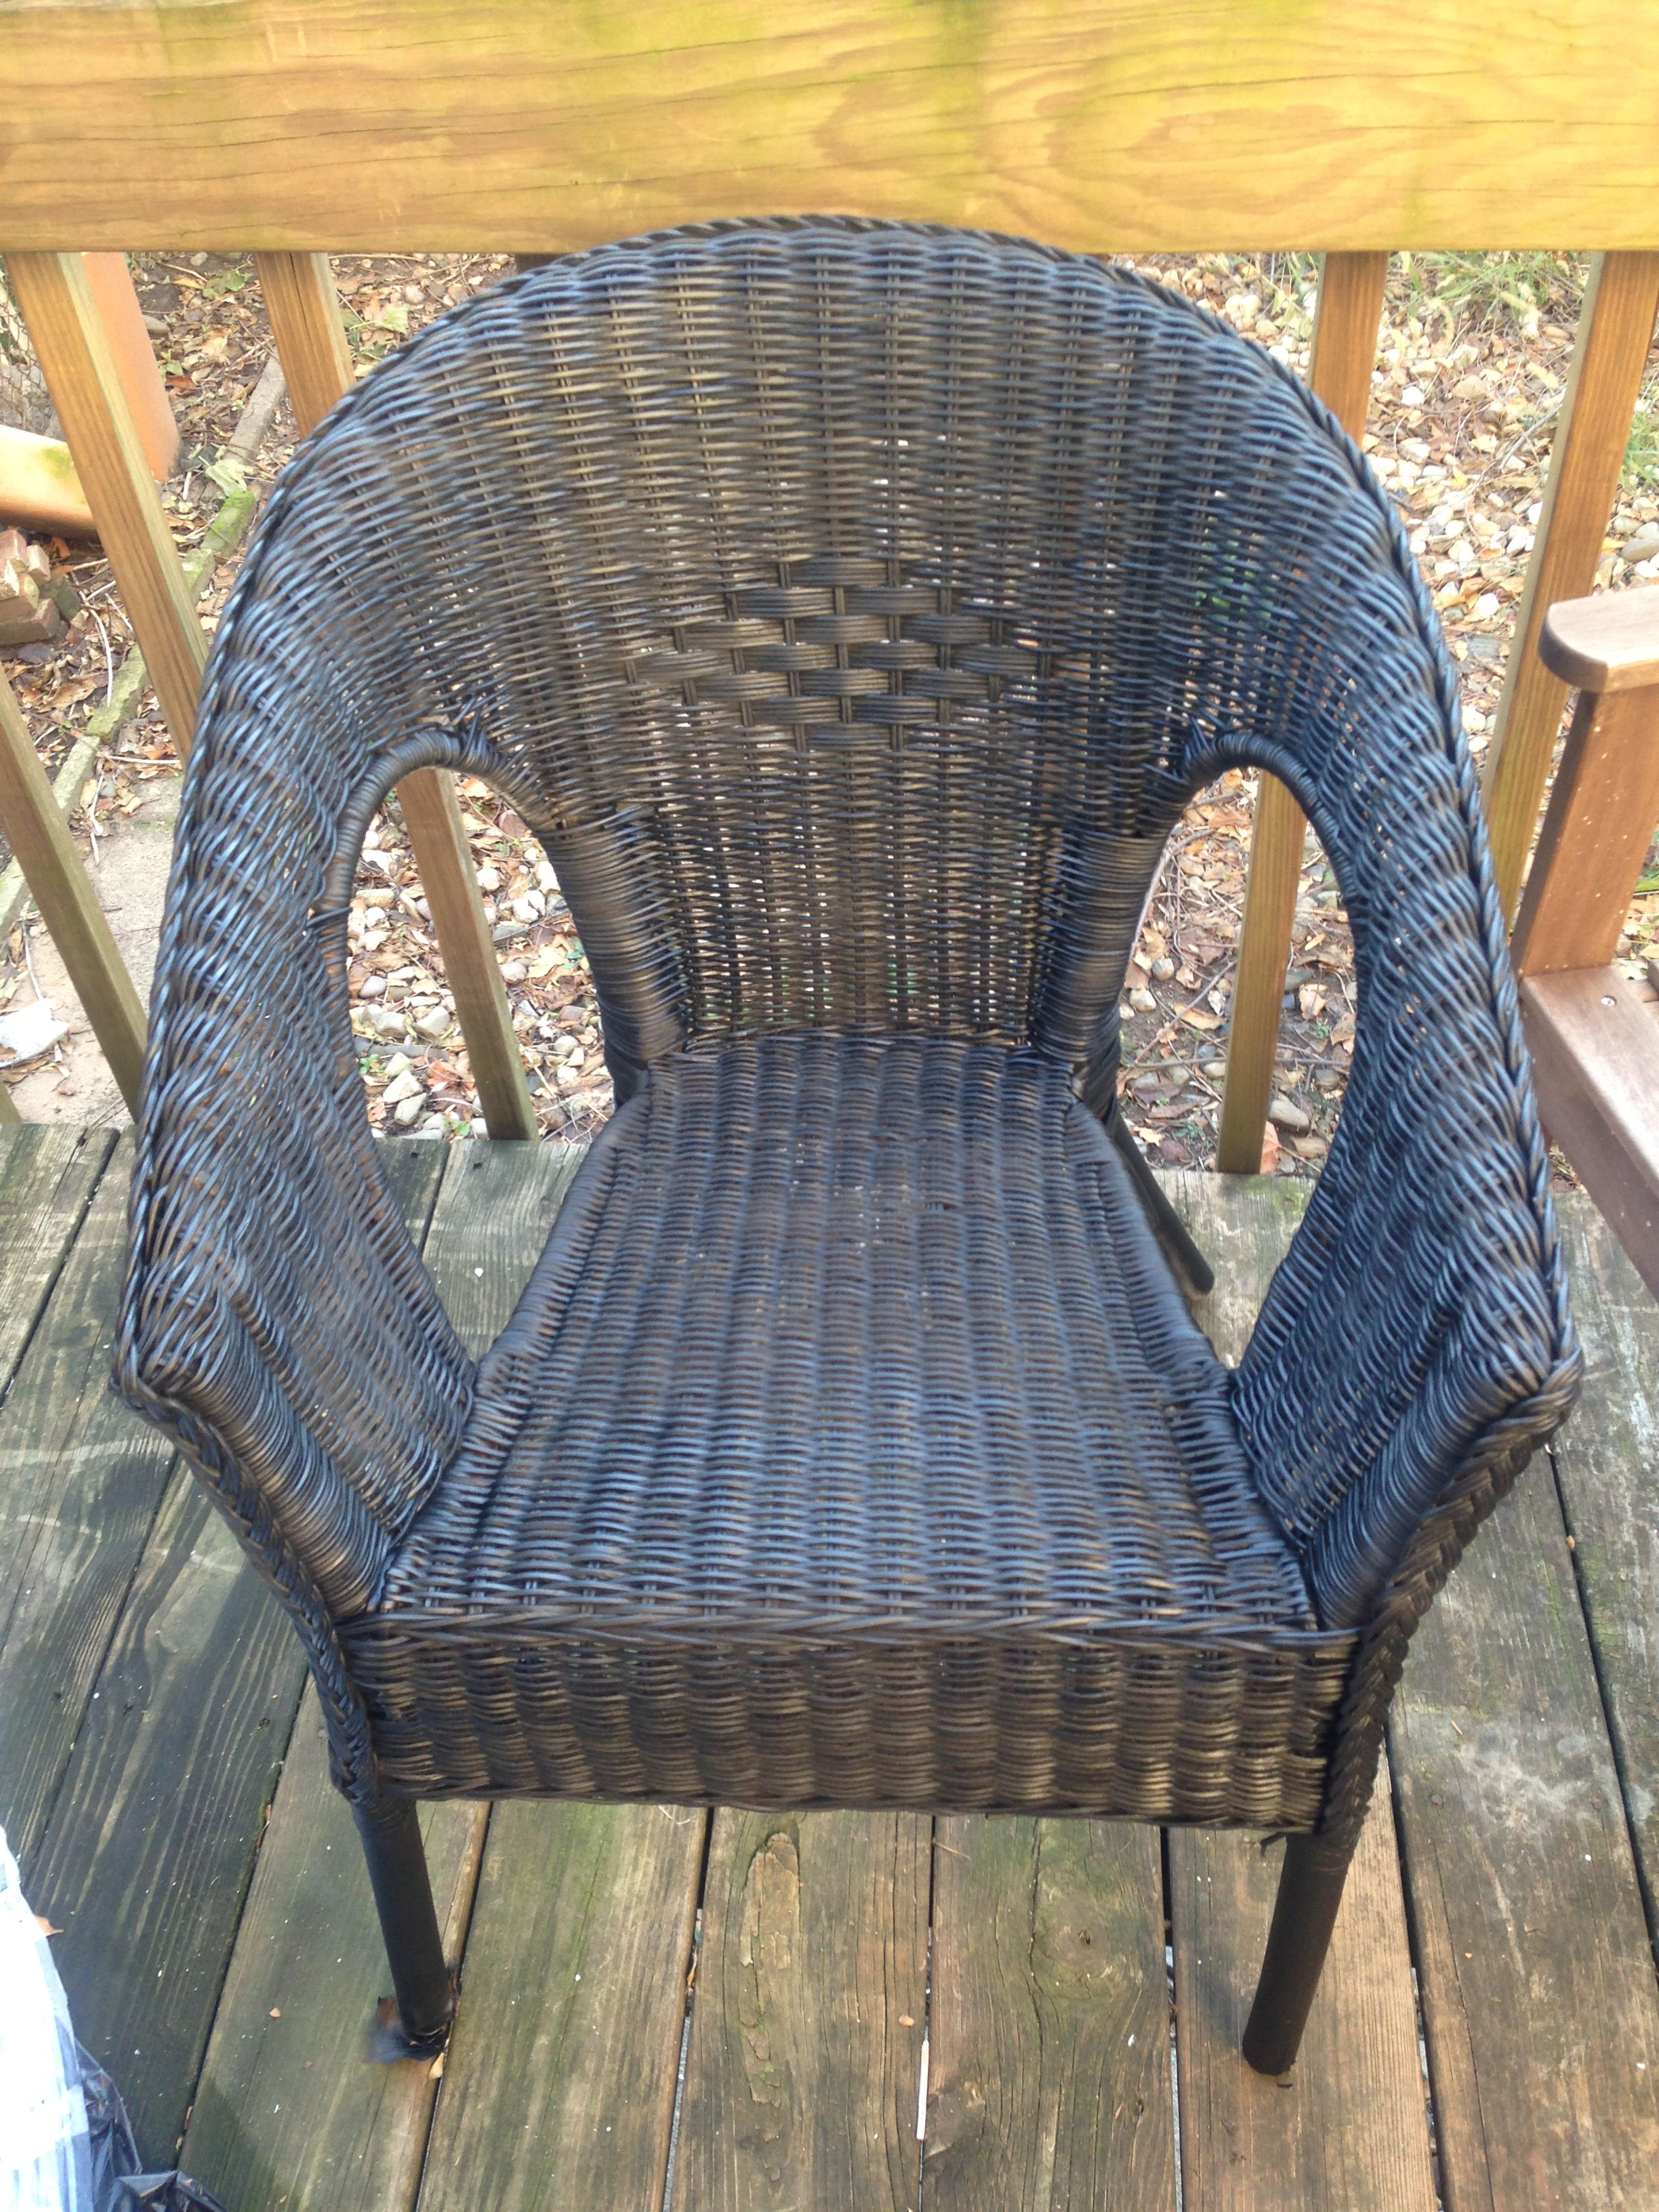 My ikea agen chair Rattan bamboo spray painted matte